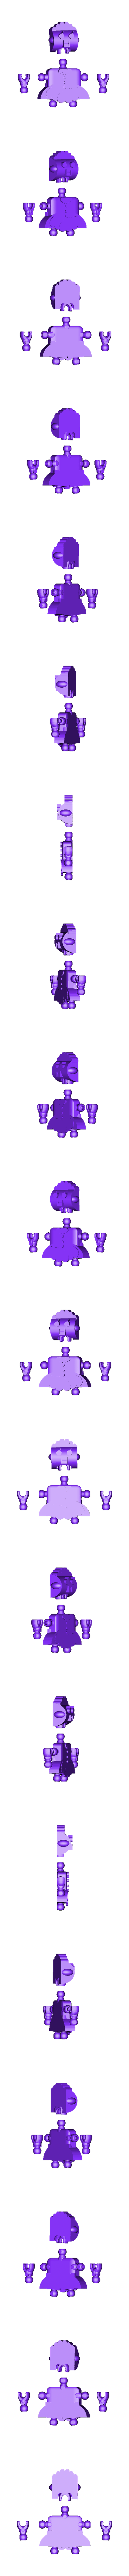 Rosie_-_head_body.stl Download free STL file Rosie the Robot Maid - Jetsons - Klicket Compatible • 3D print object, gotbits